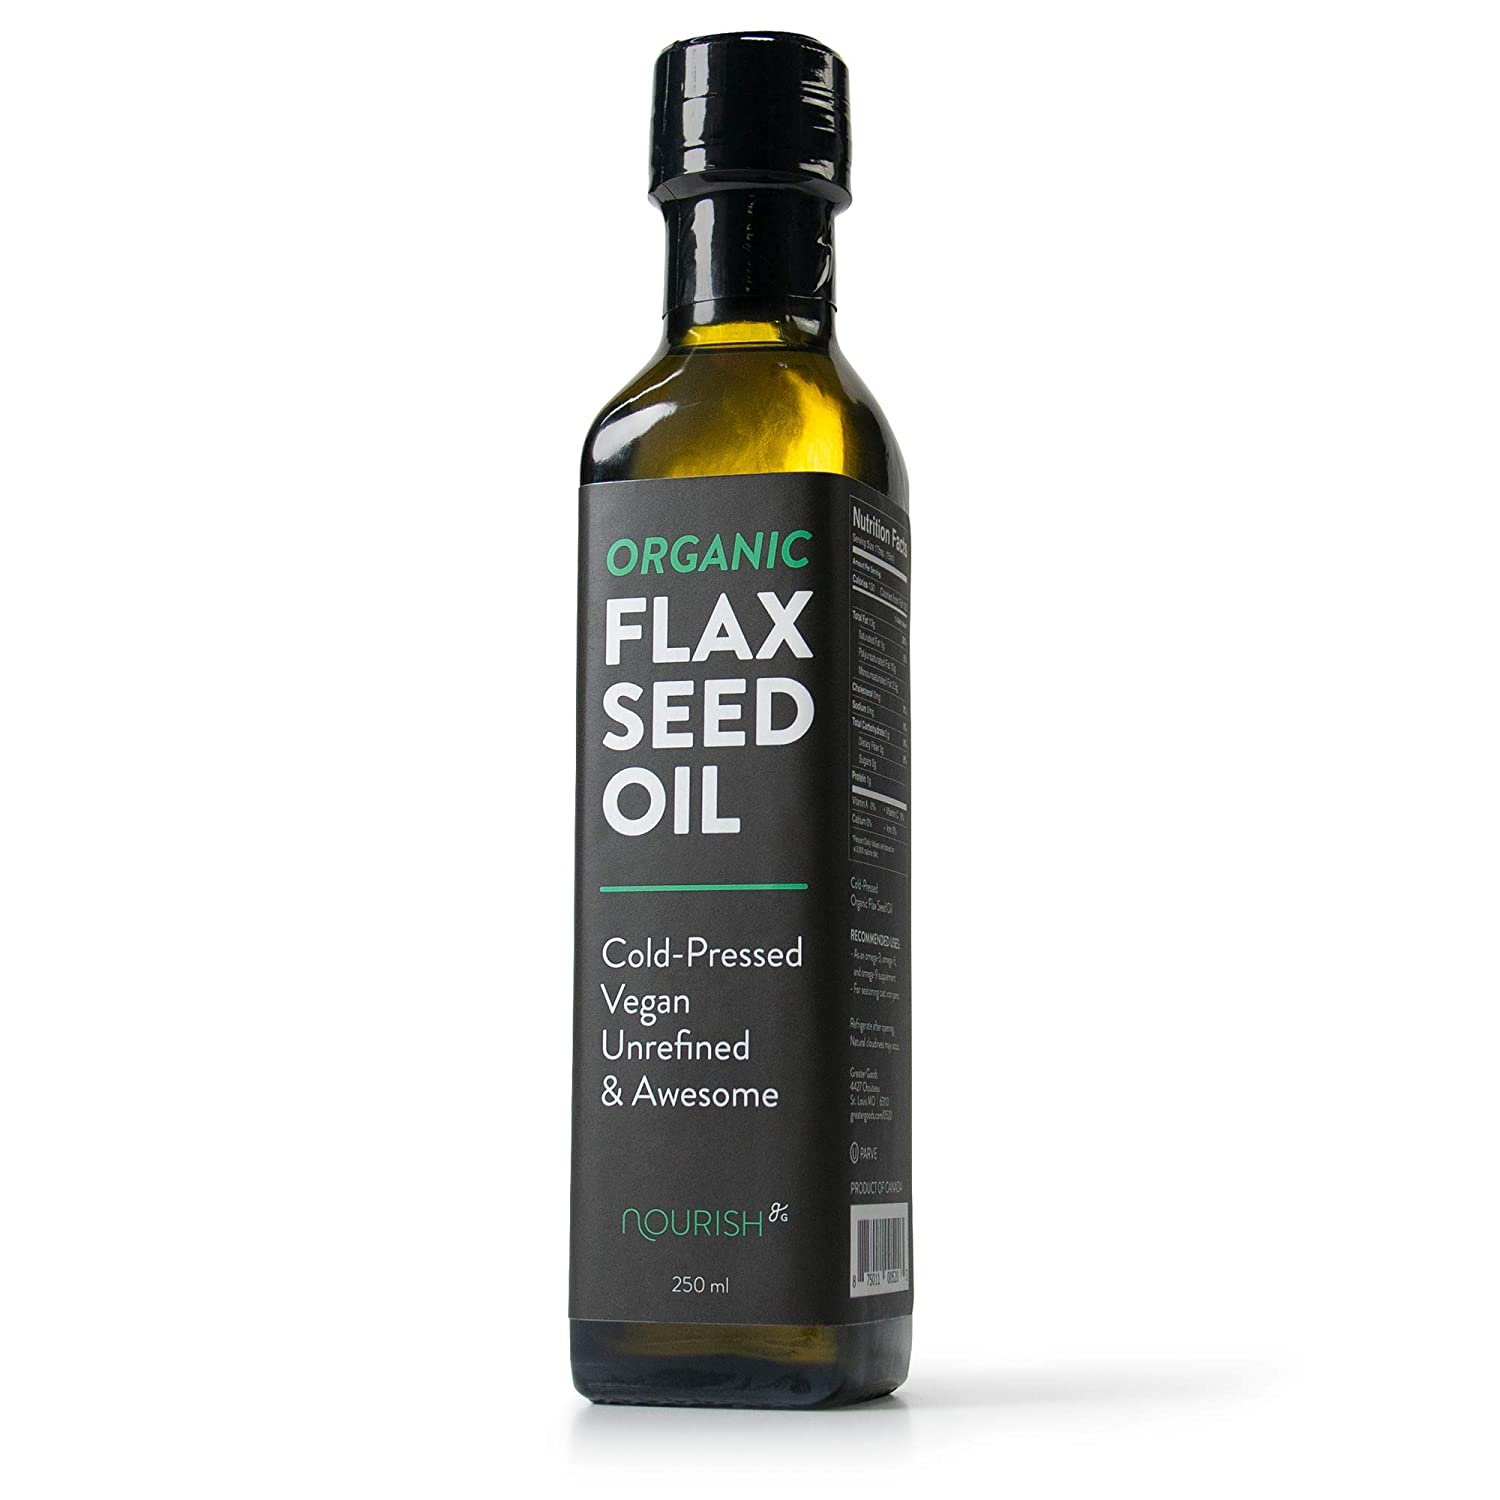 GreaterGoods Organic Flax Seed Oil 250ML, Cold-Pressed, Vegan, Unrefined, Multiple Use Capabilities (Flax Seed Bottle)